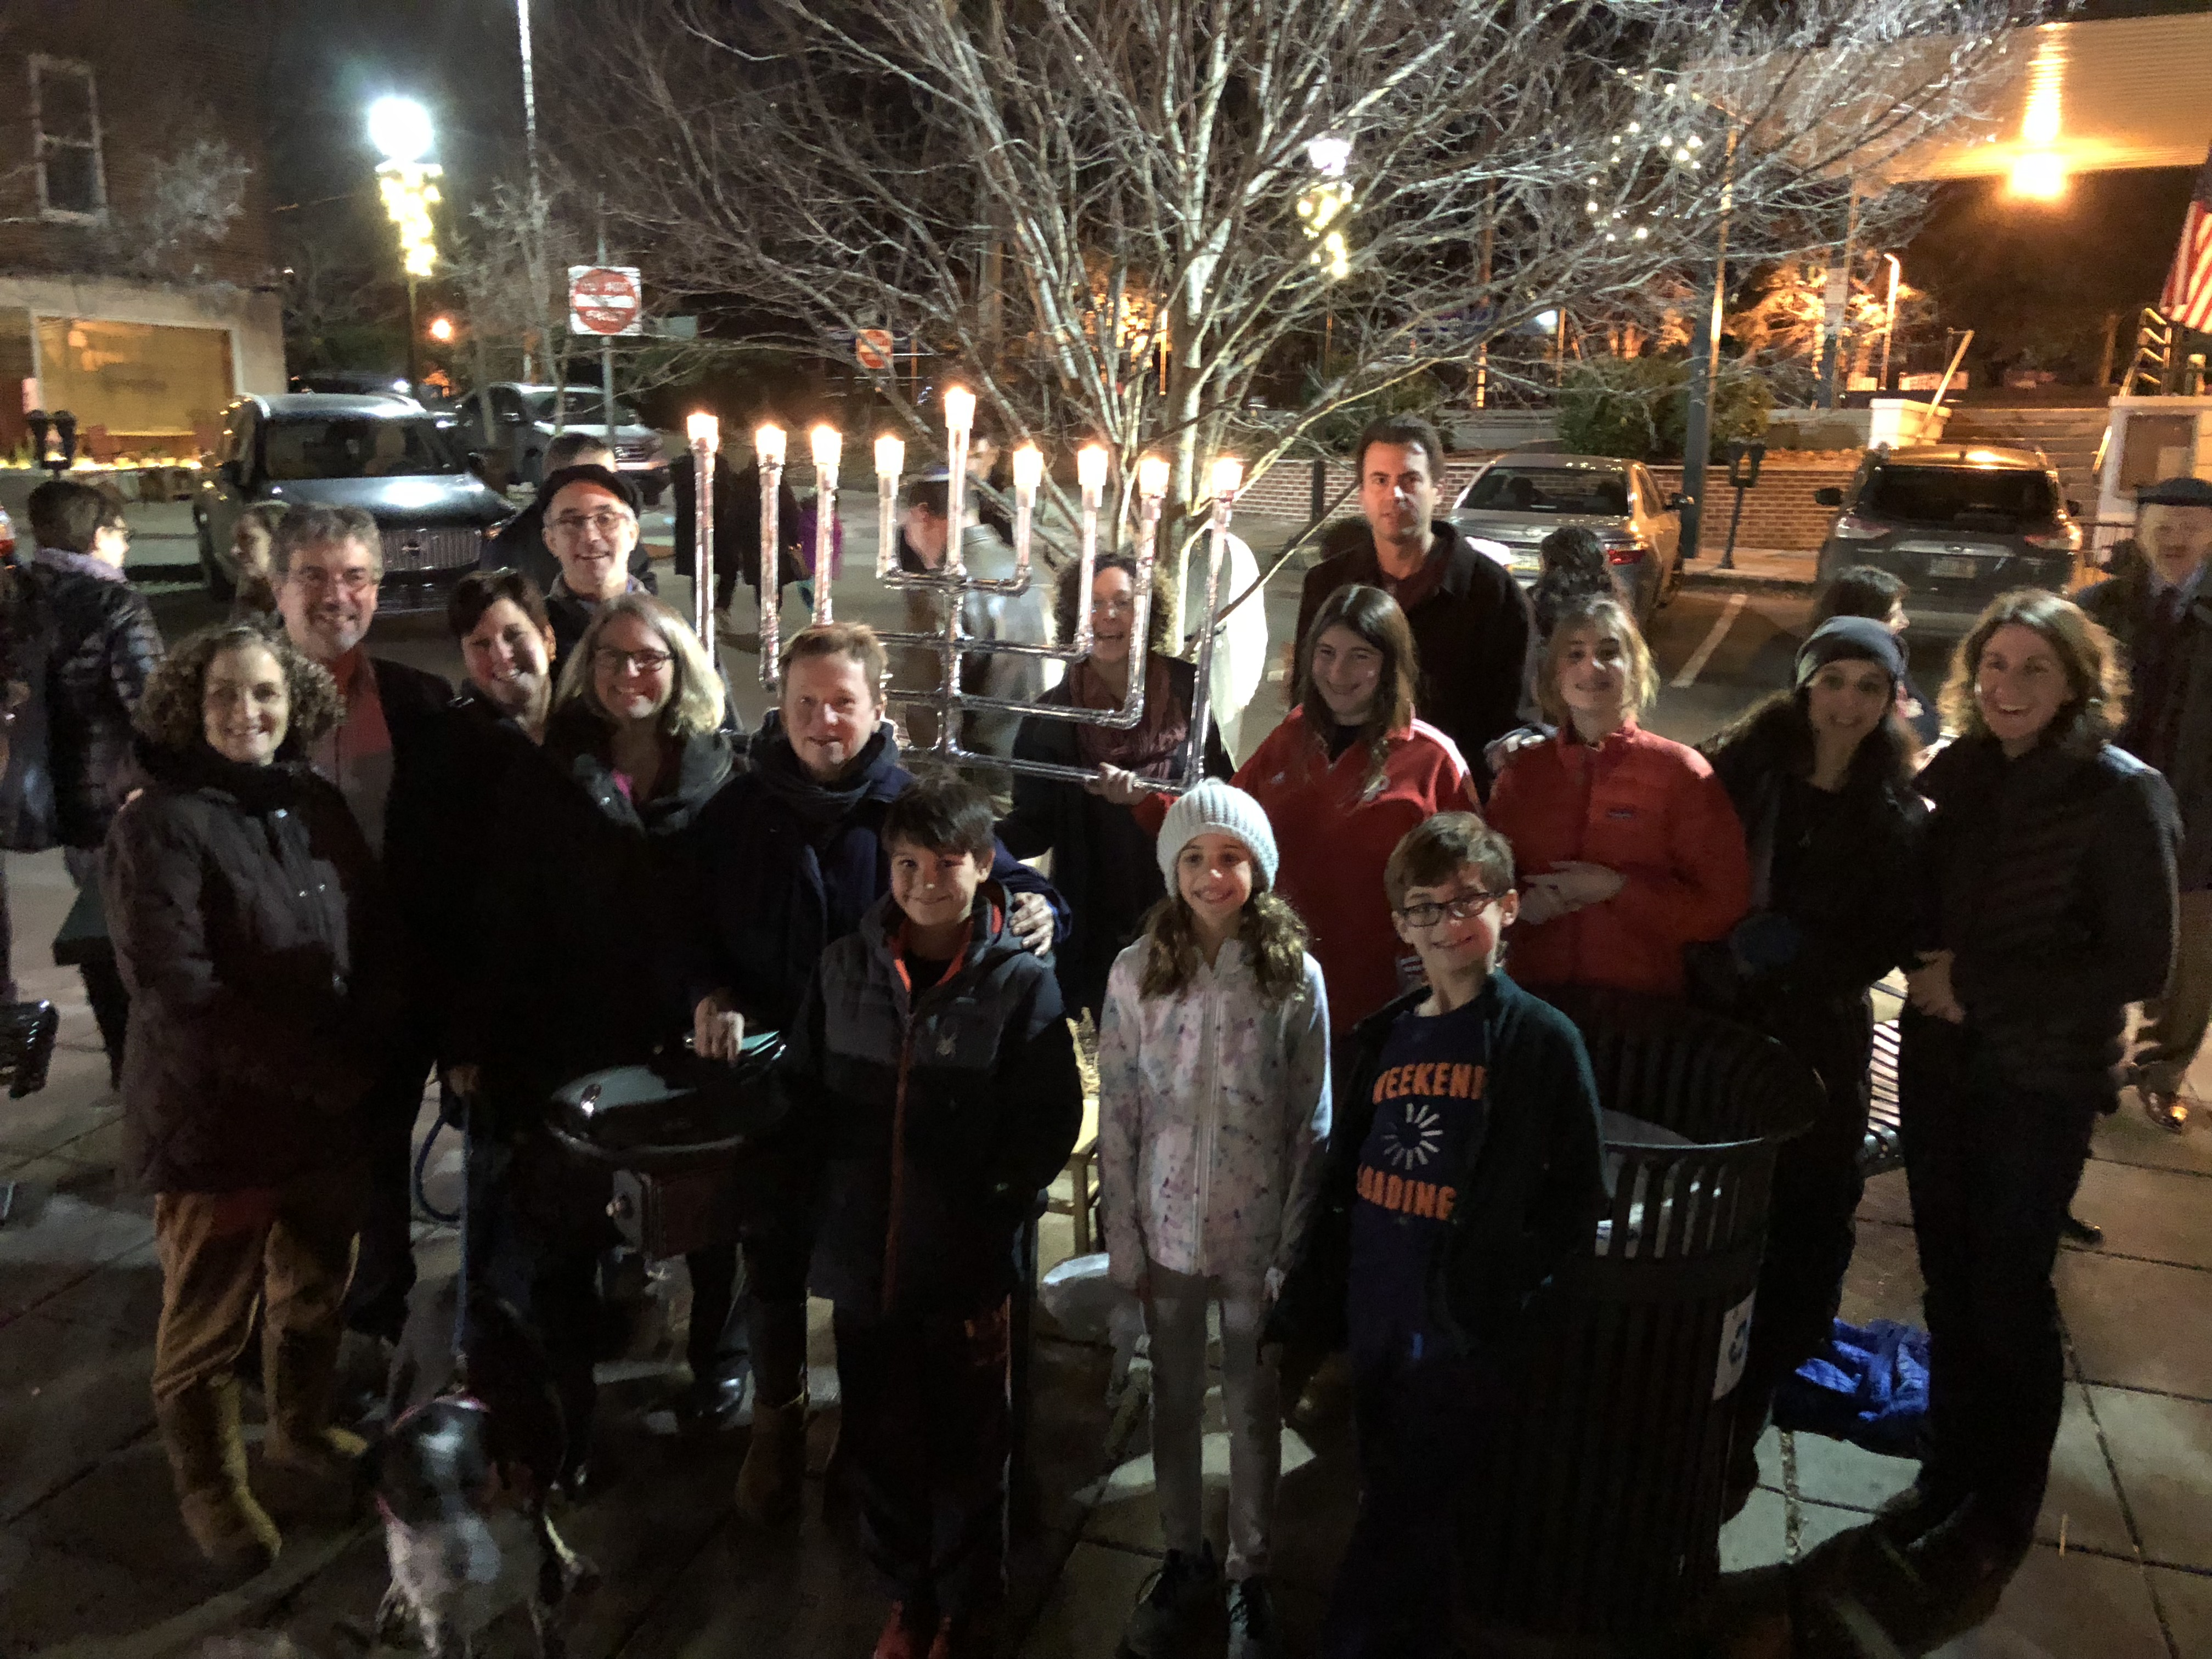 Hannukah Candle Lighting at Narberth Train Station with